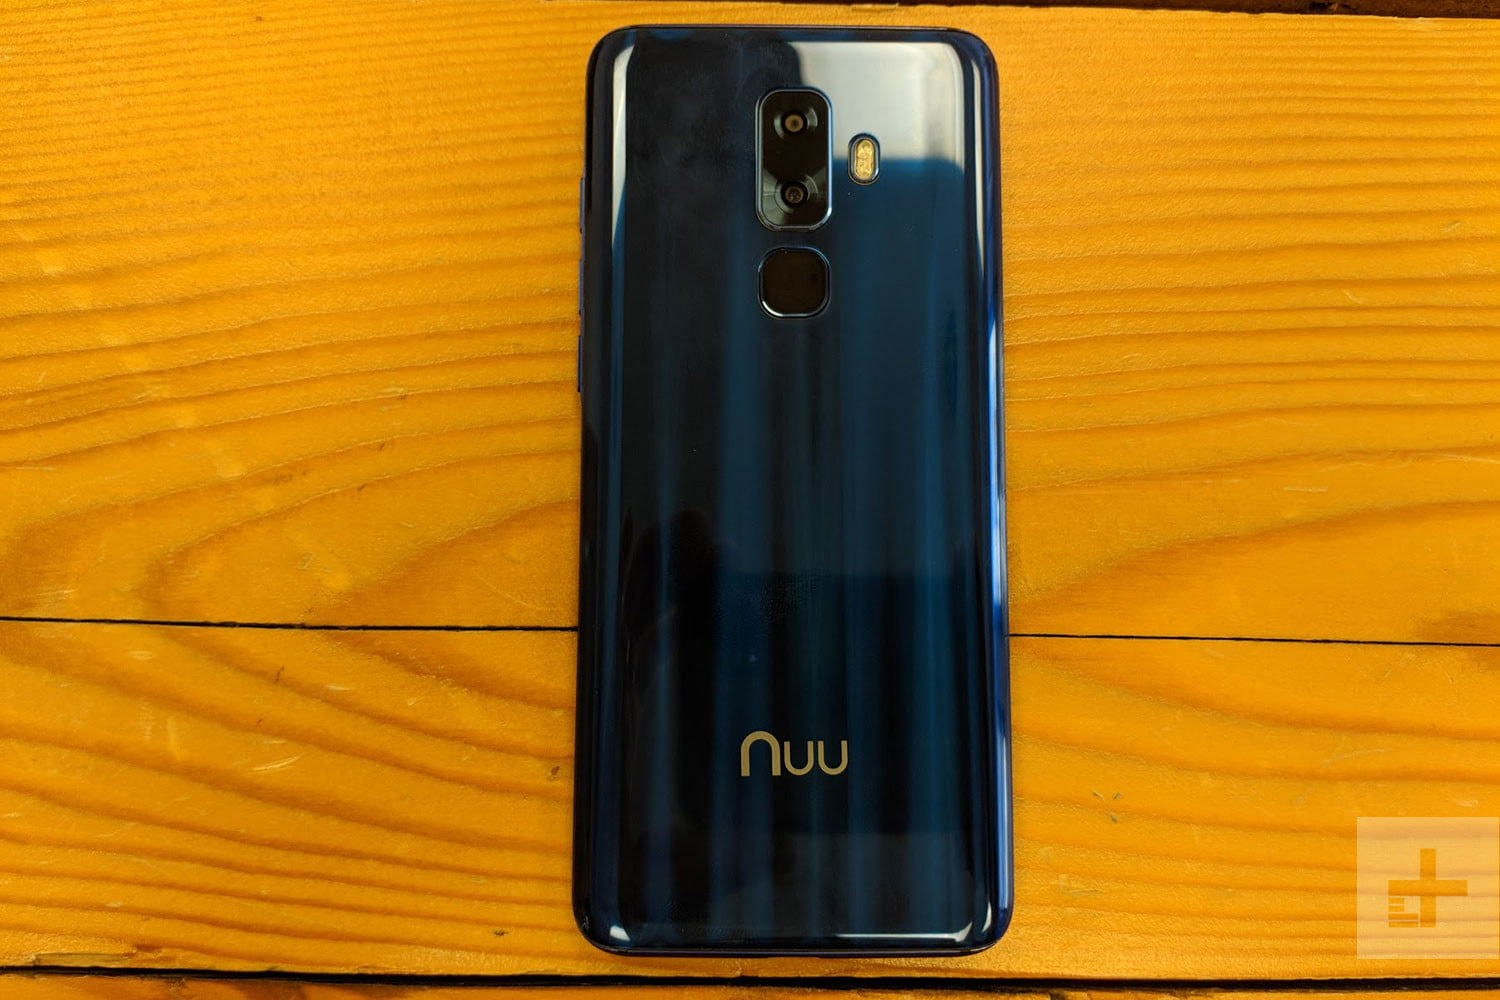 premium selection 3eb0f 87b76 Nuu G3 Review | Digital Trends